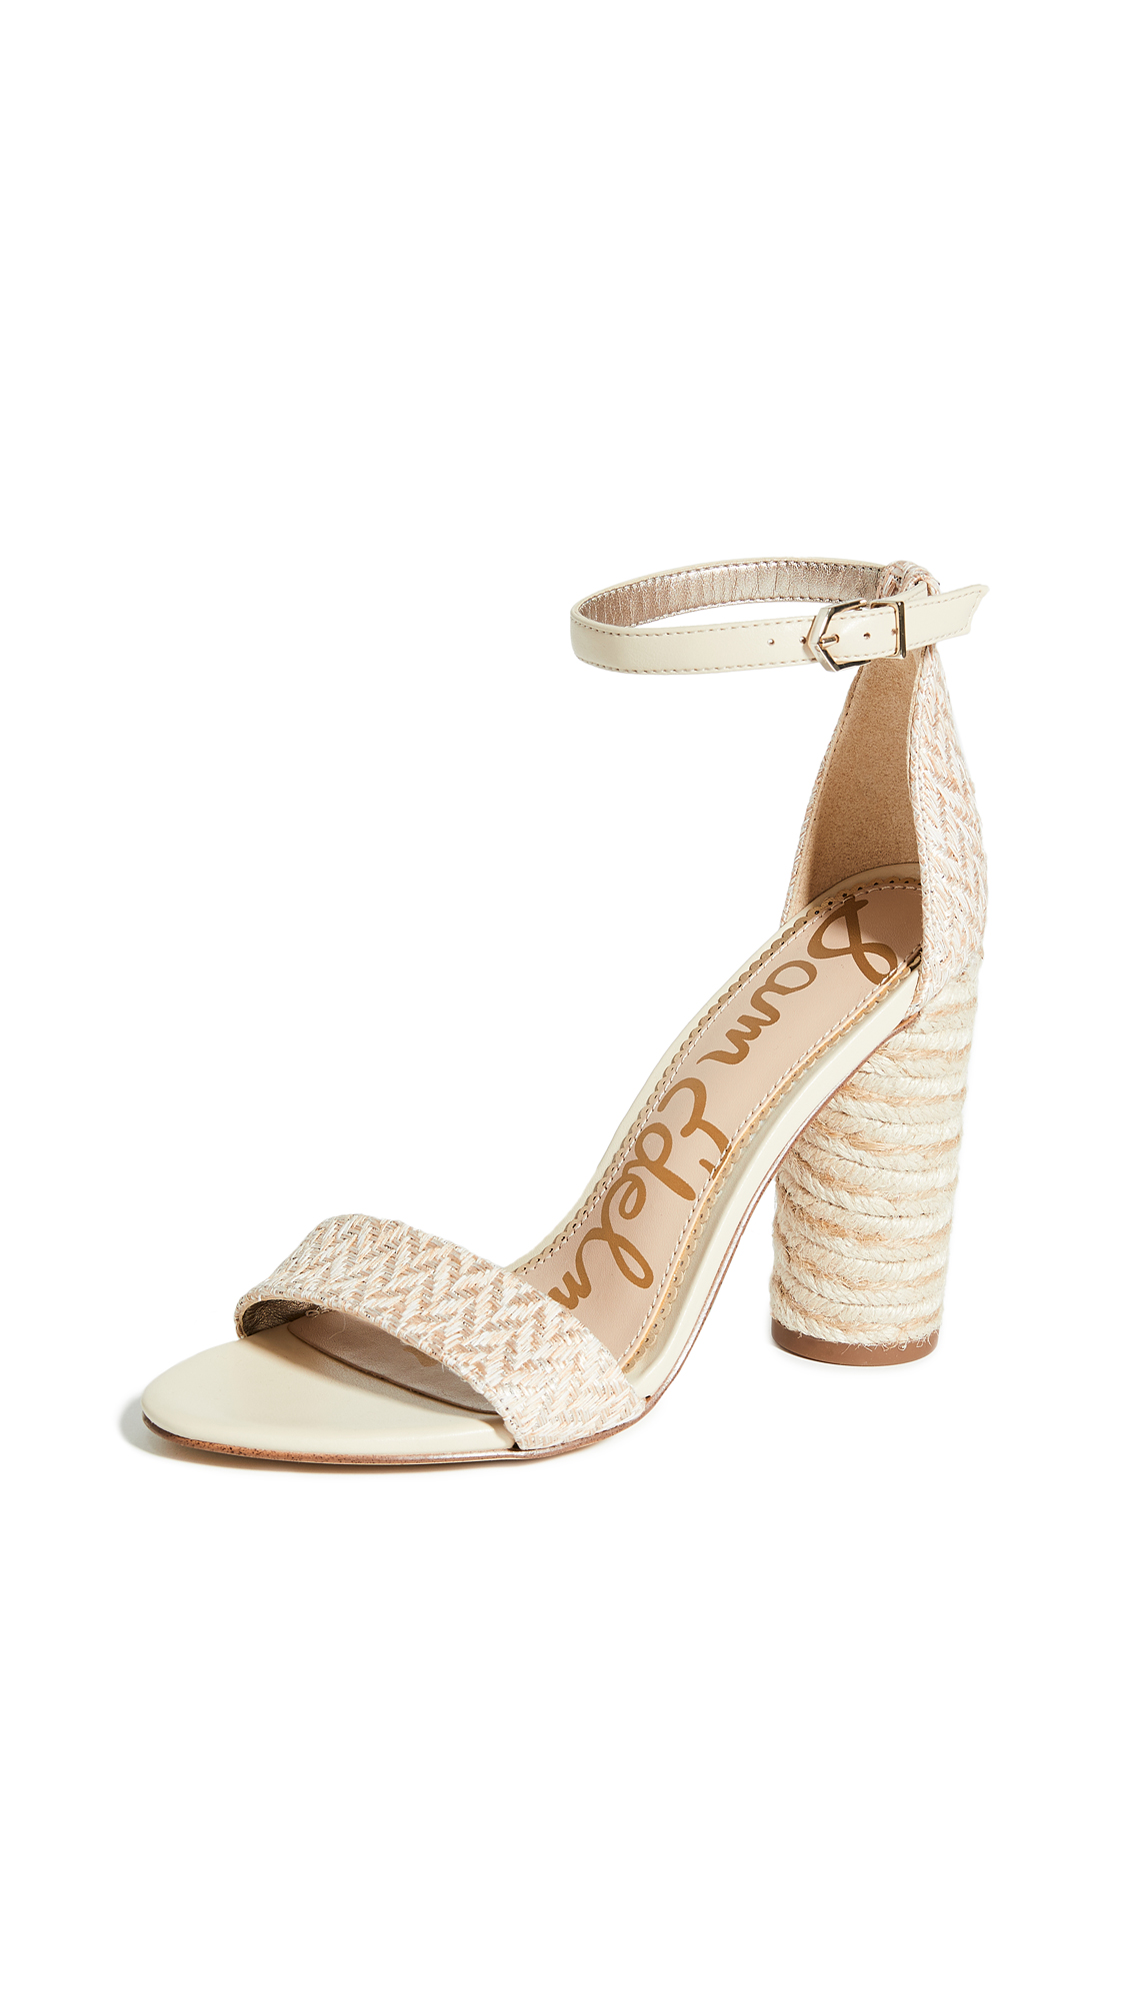 Sam Edelman Yamile Sandals - 30% Off Sale